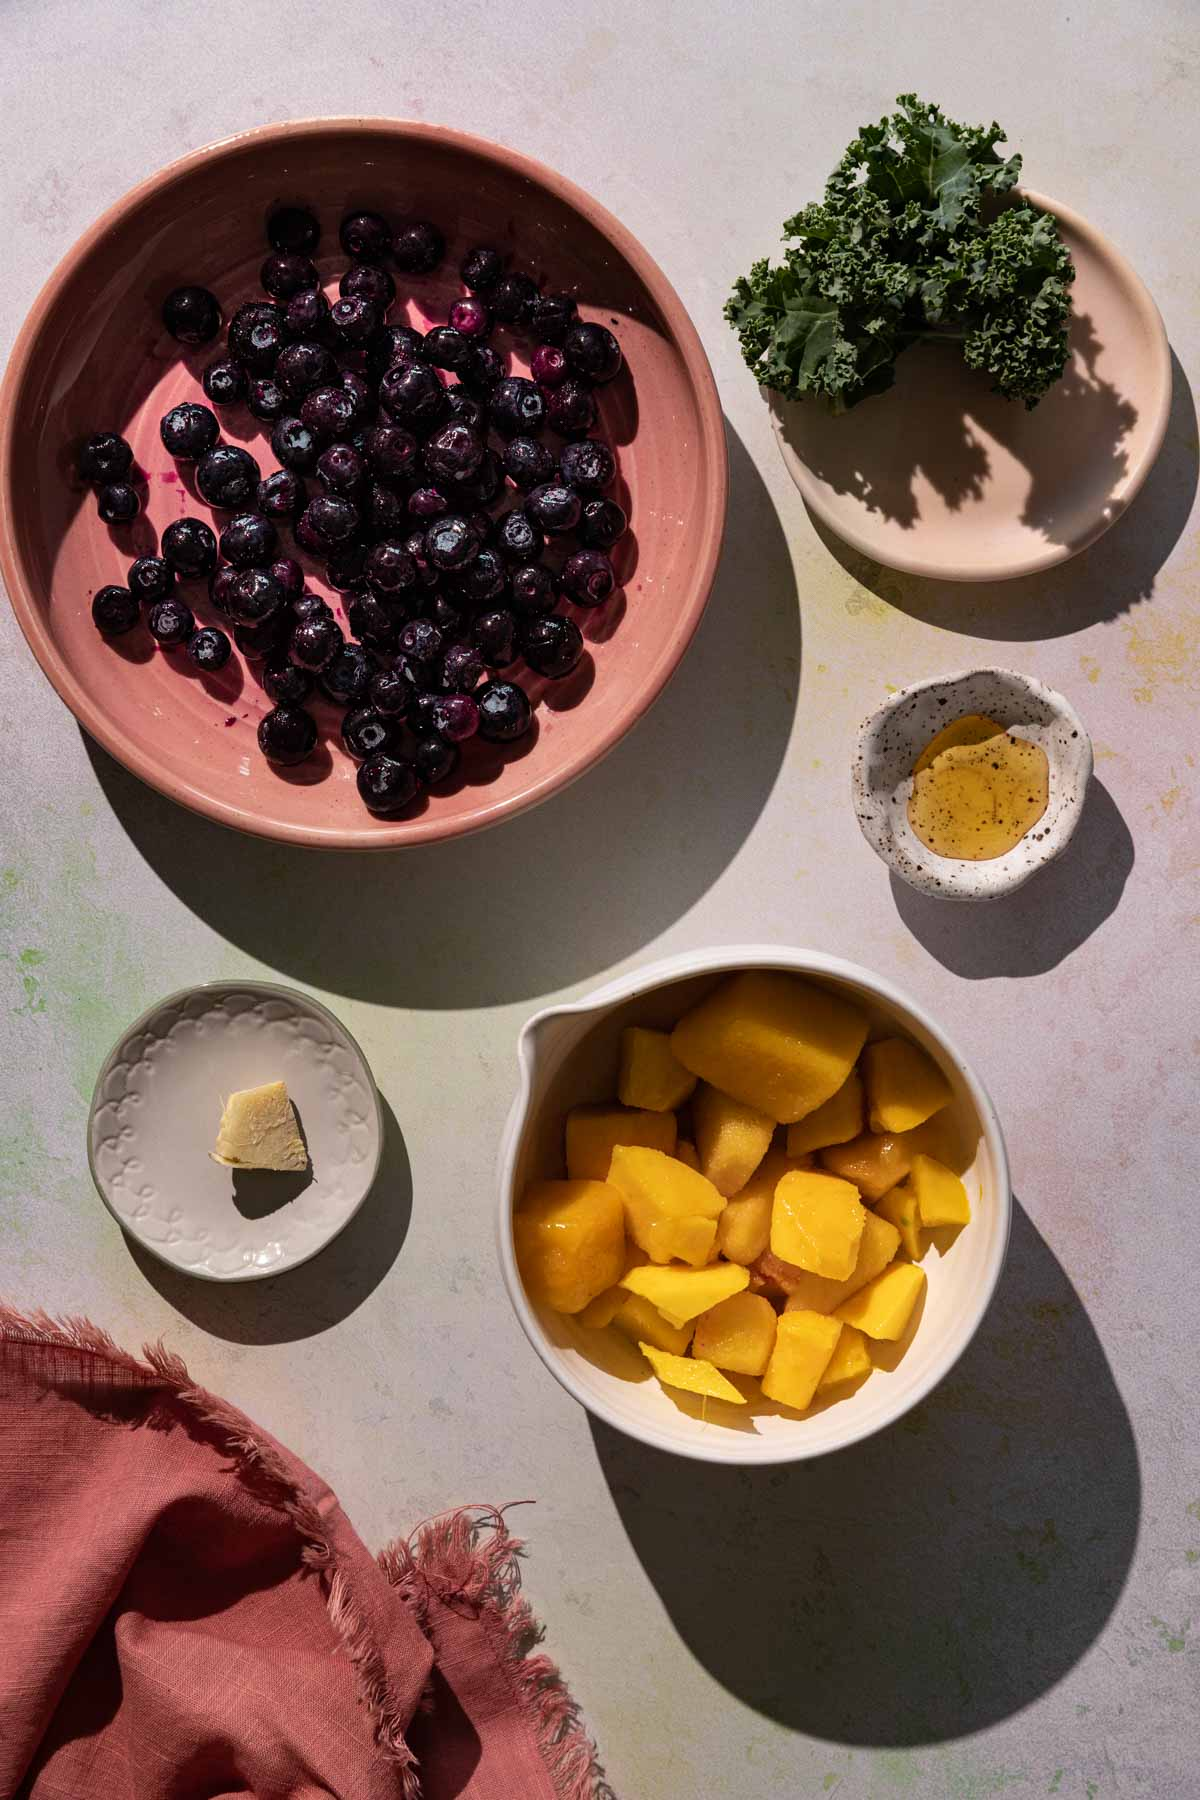 Ingredients for Blueberry Kale smoothie in bowls on a colorful background with a red linen cloth